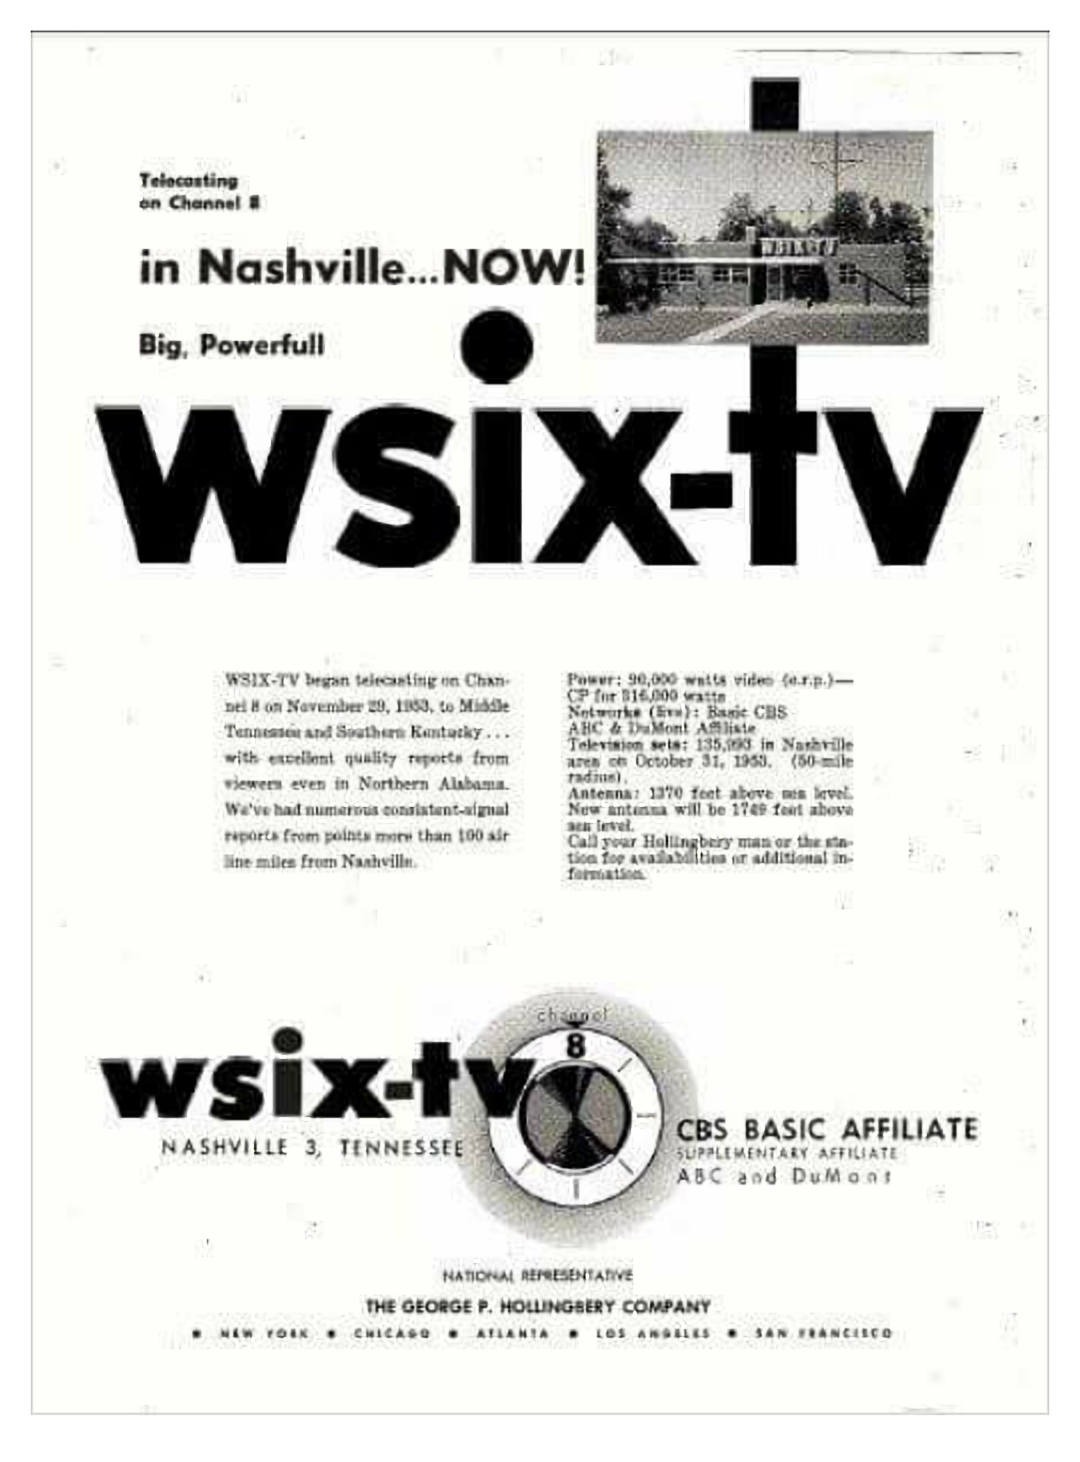 wsix now wkrn channel 8 now channel 2 signed on three years later on november 29 1953 wlac tv now wtvf channel 5 signed on nine months later